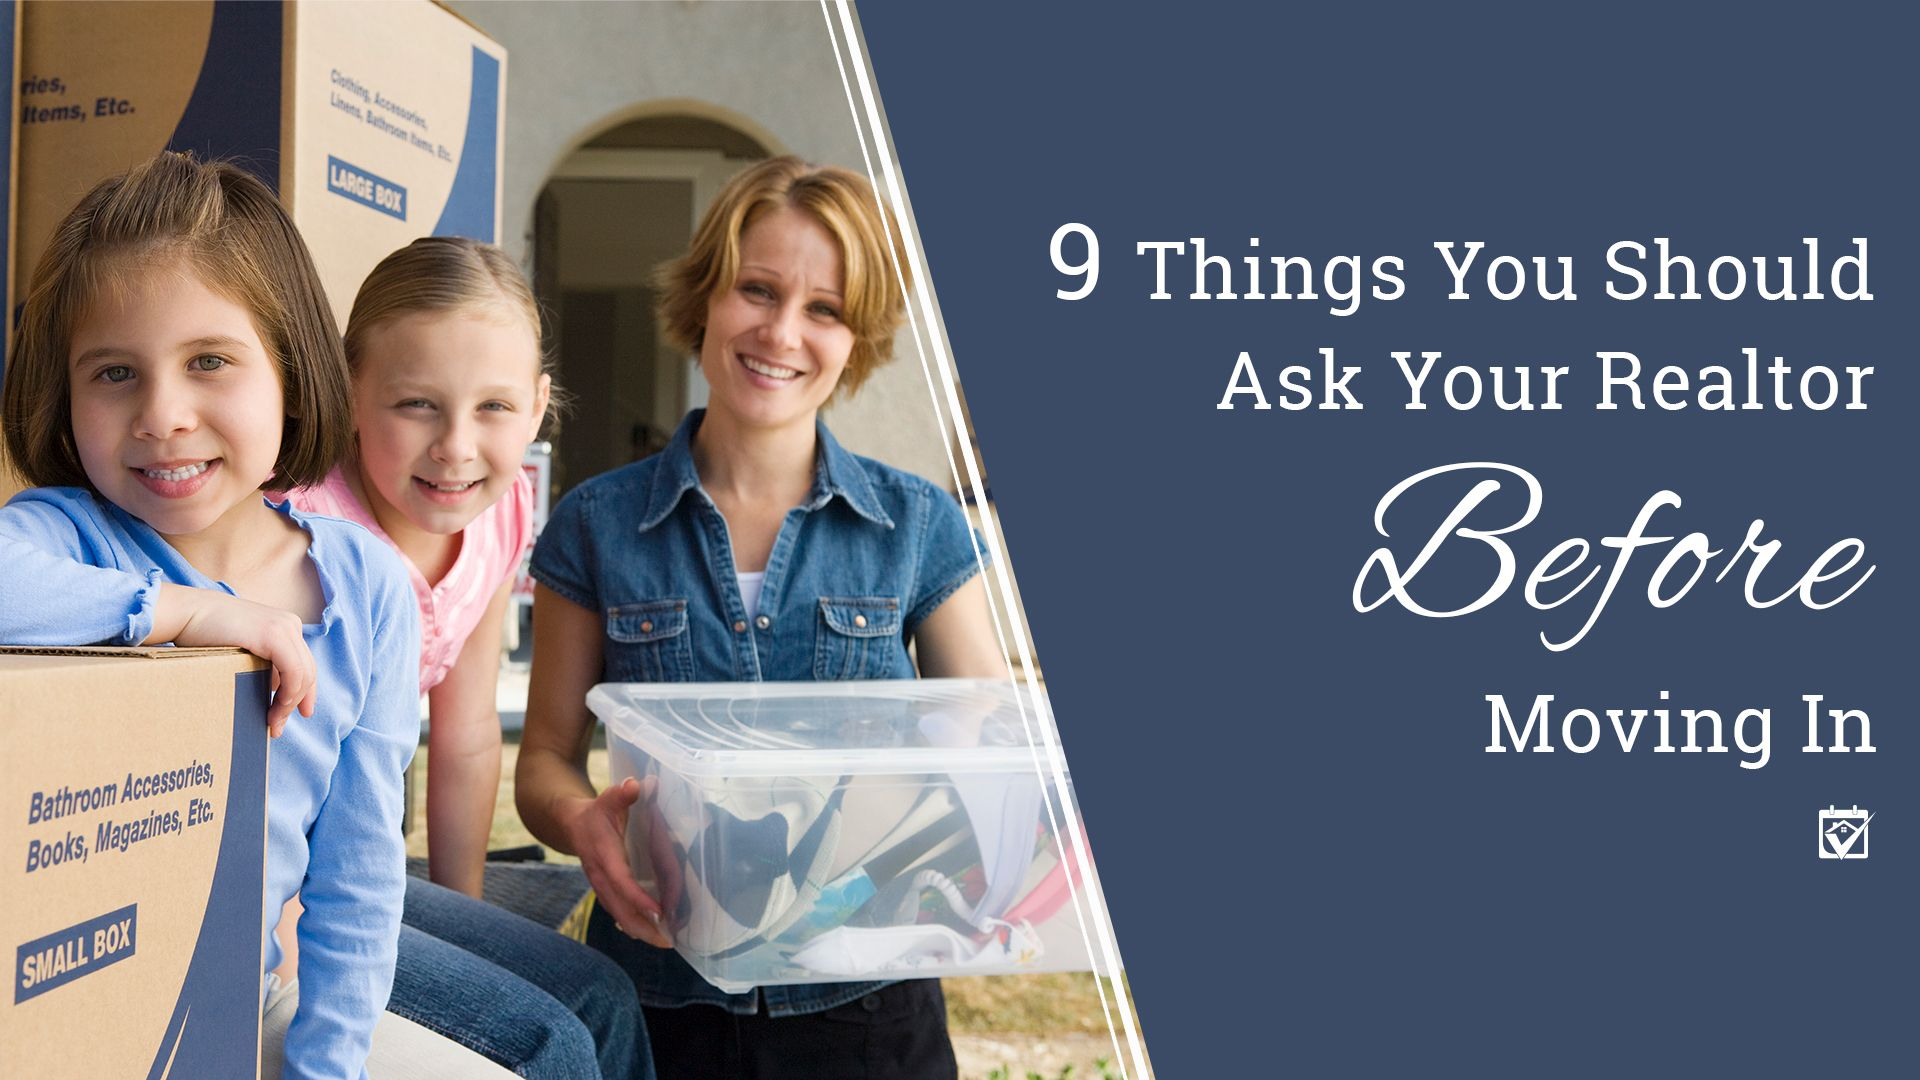 9 Important Things To Ask Your Realtor When Moving